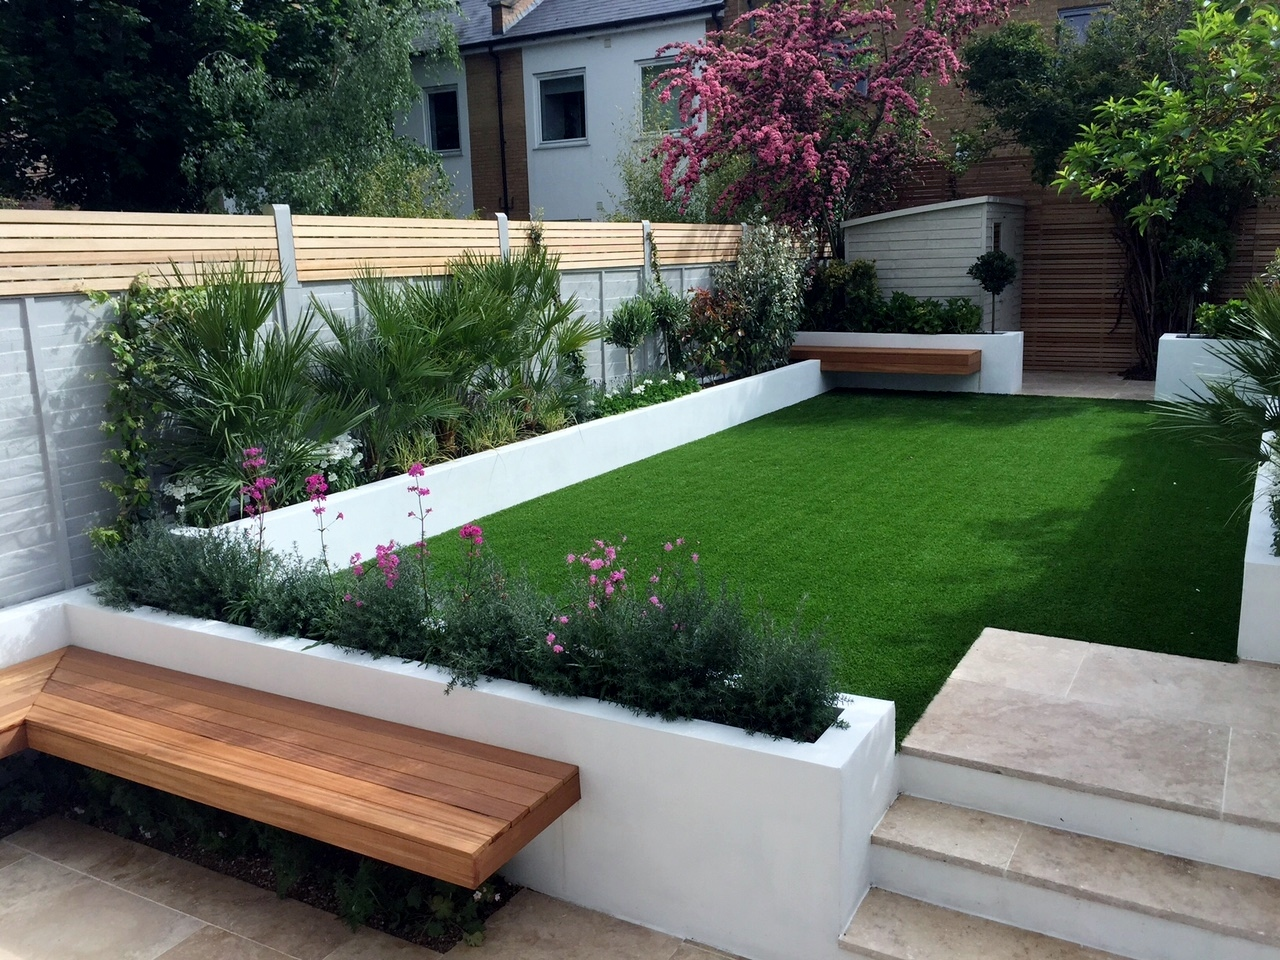 Modern garden design ideas fulham chelsea battersea for Contemporary garden designs and ideas